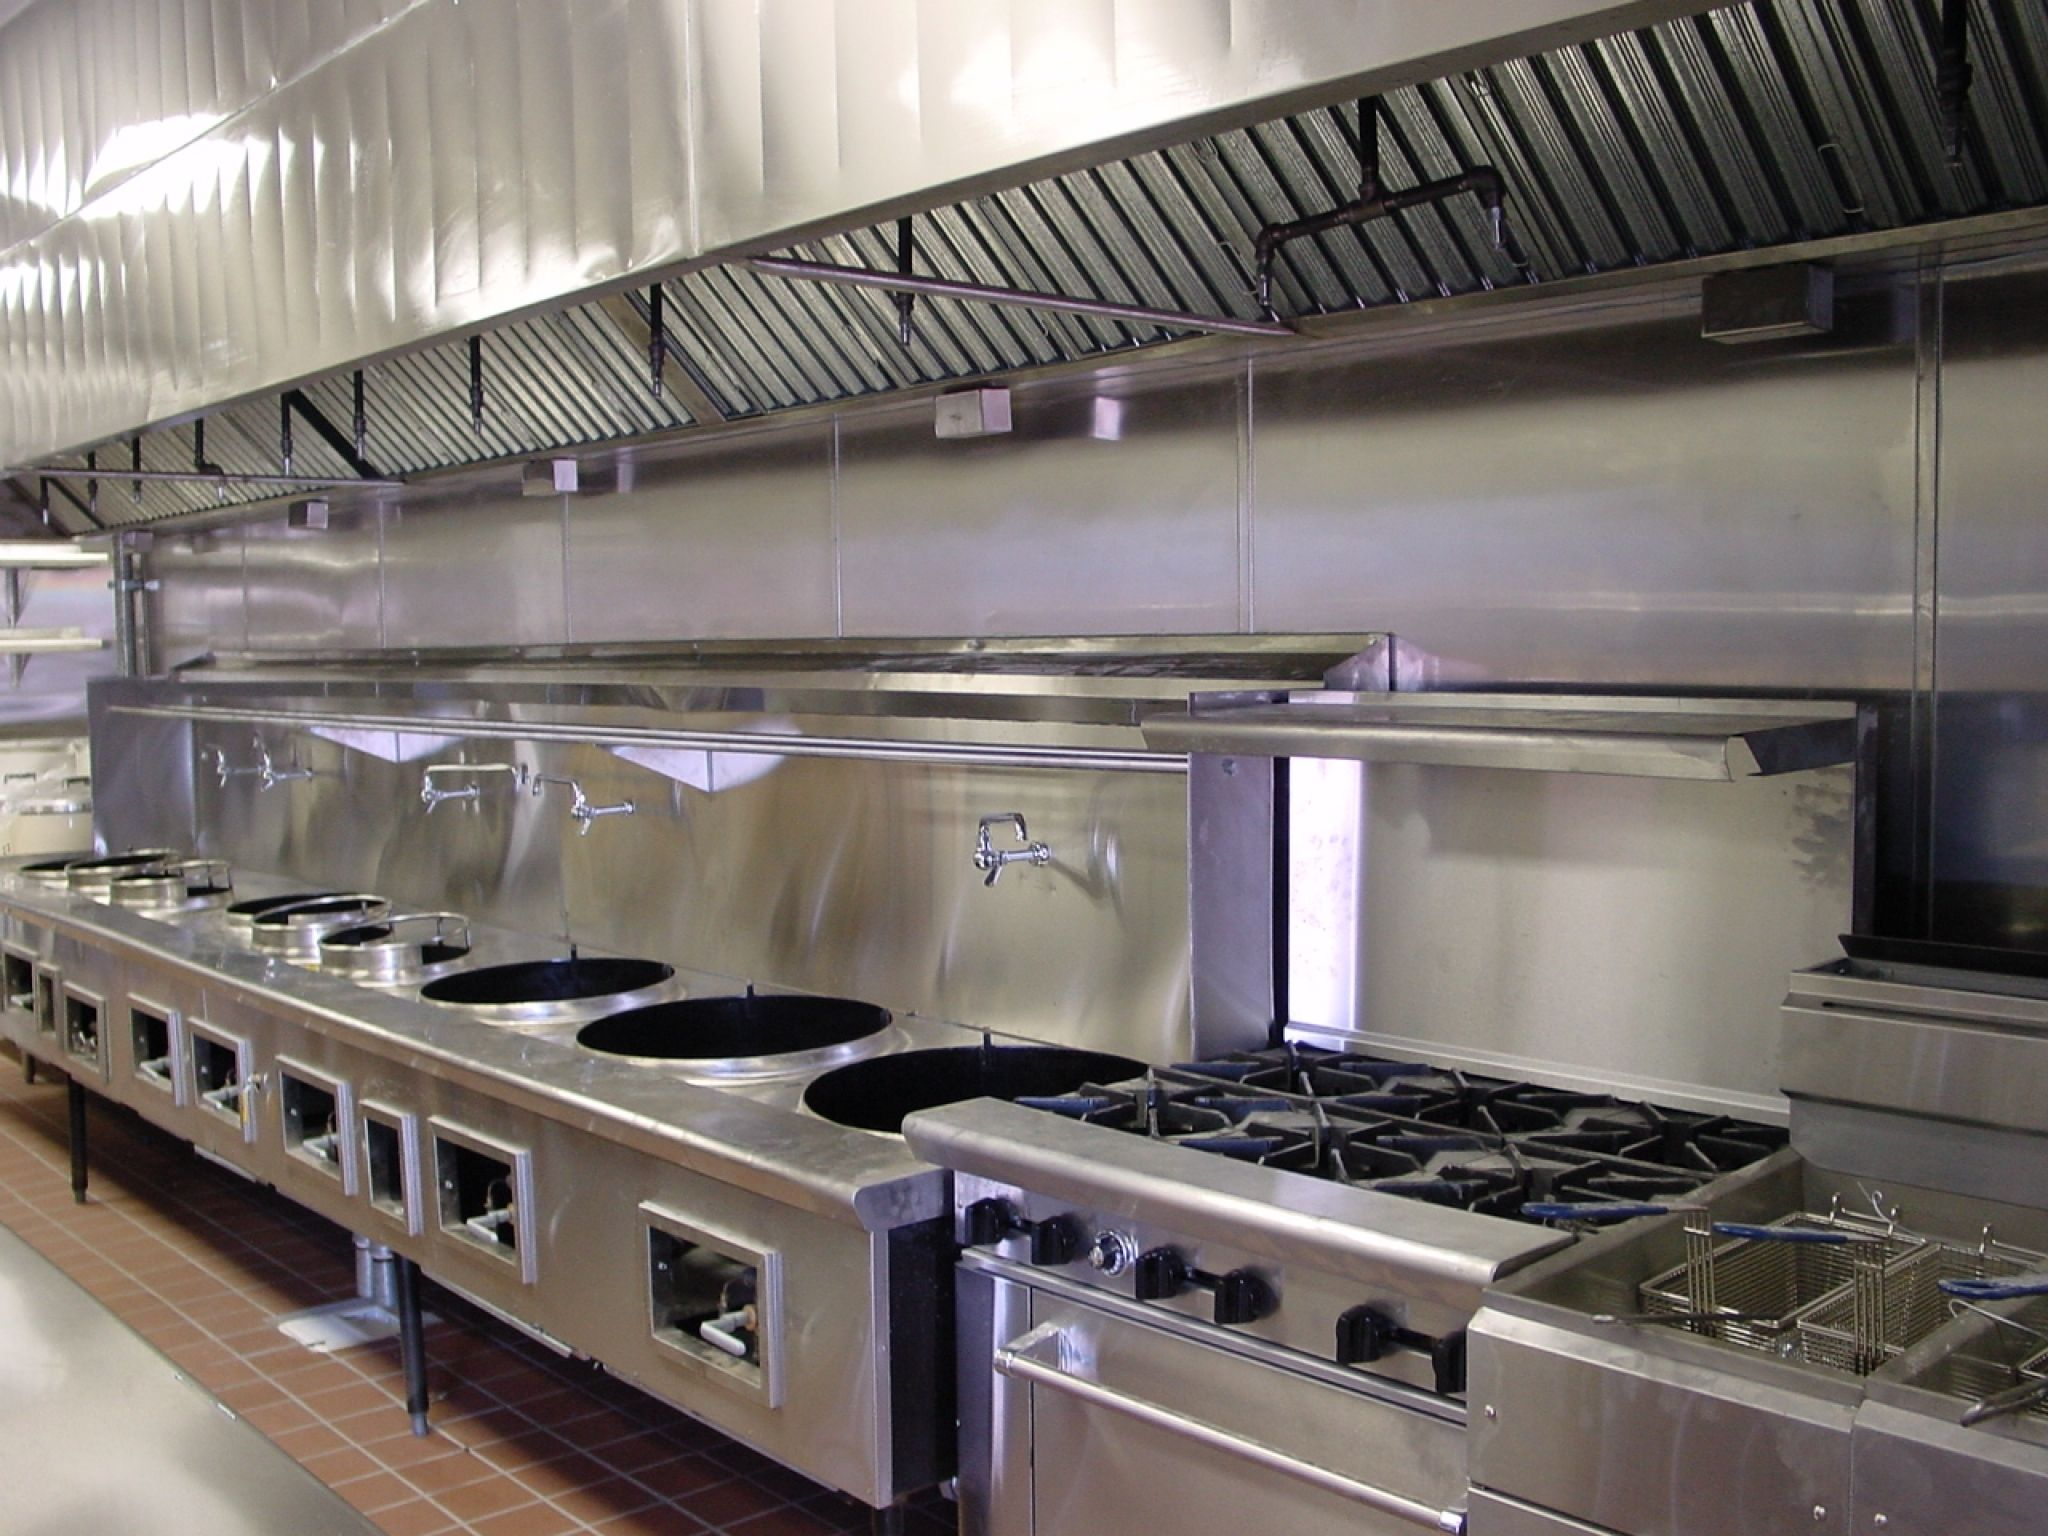 Commercial Kitchen Exhaust System Design Images Home Interior